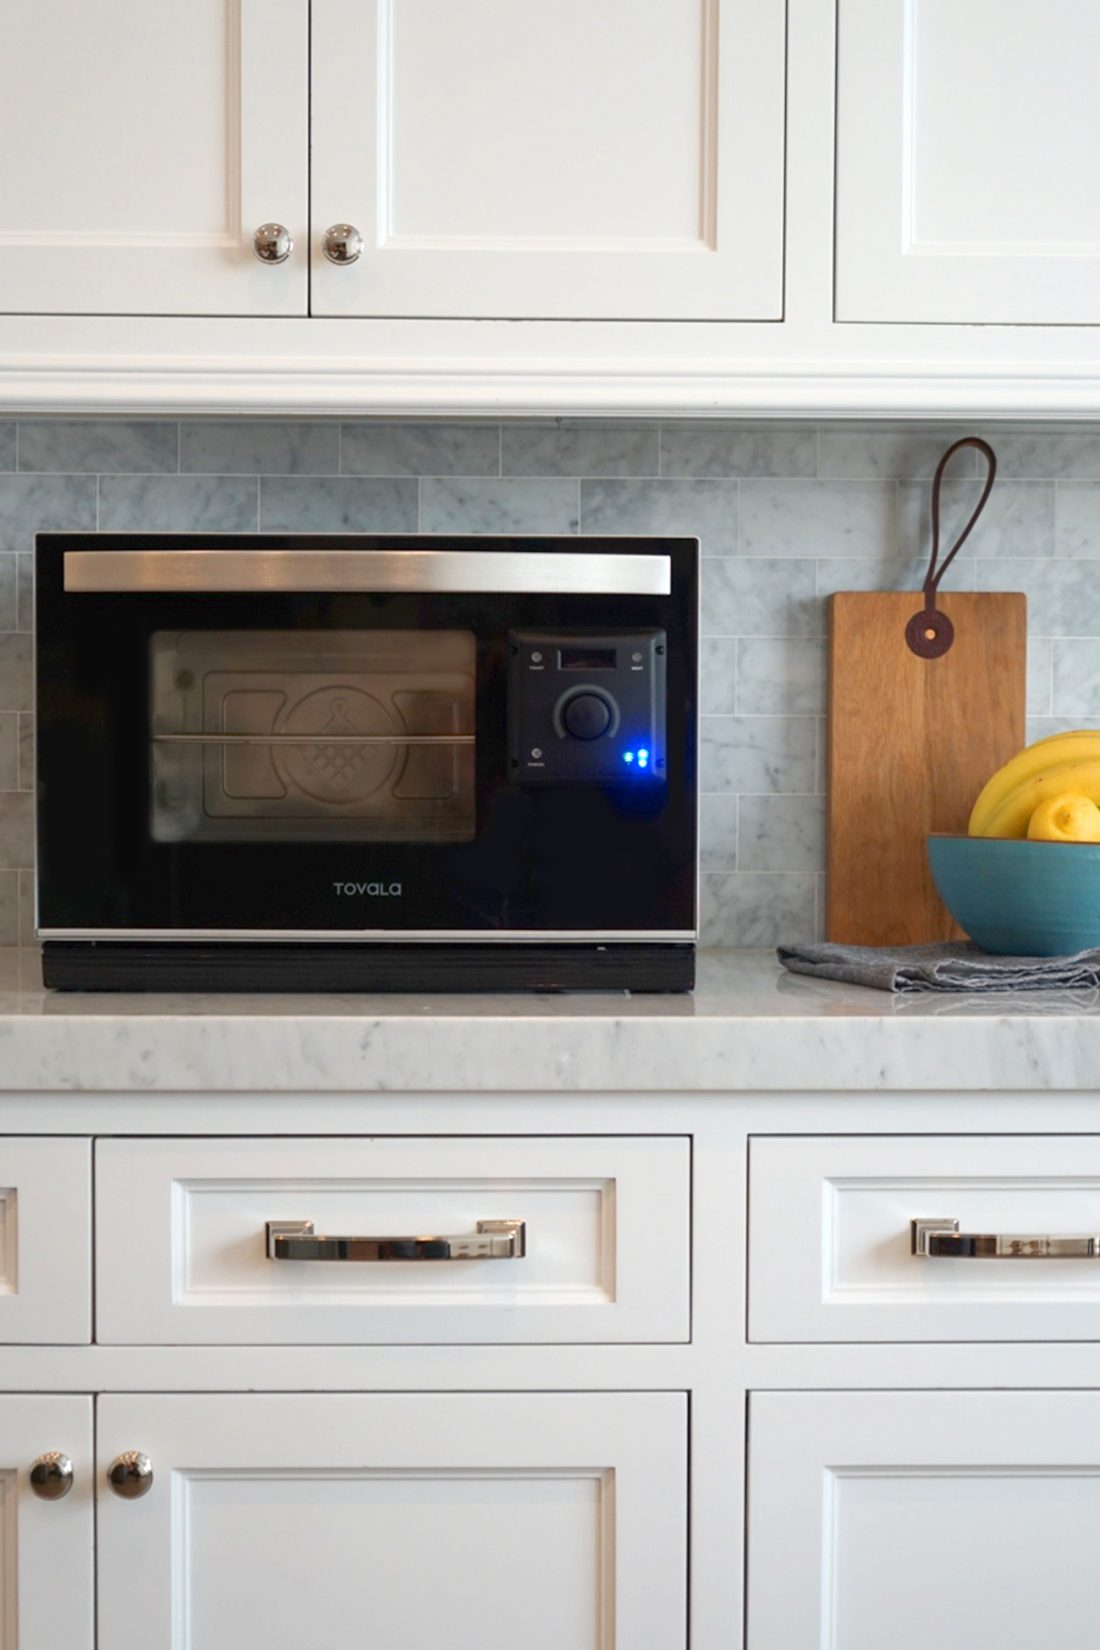 This 400 Smart Oven Wants To Cook You A Fantastic Meal